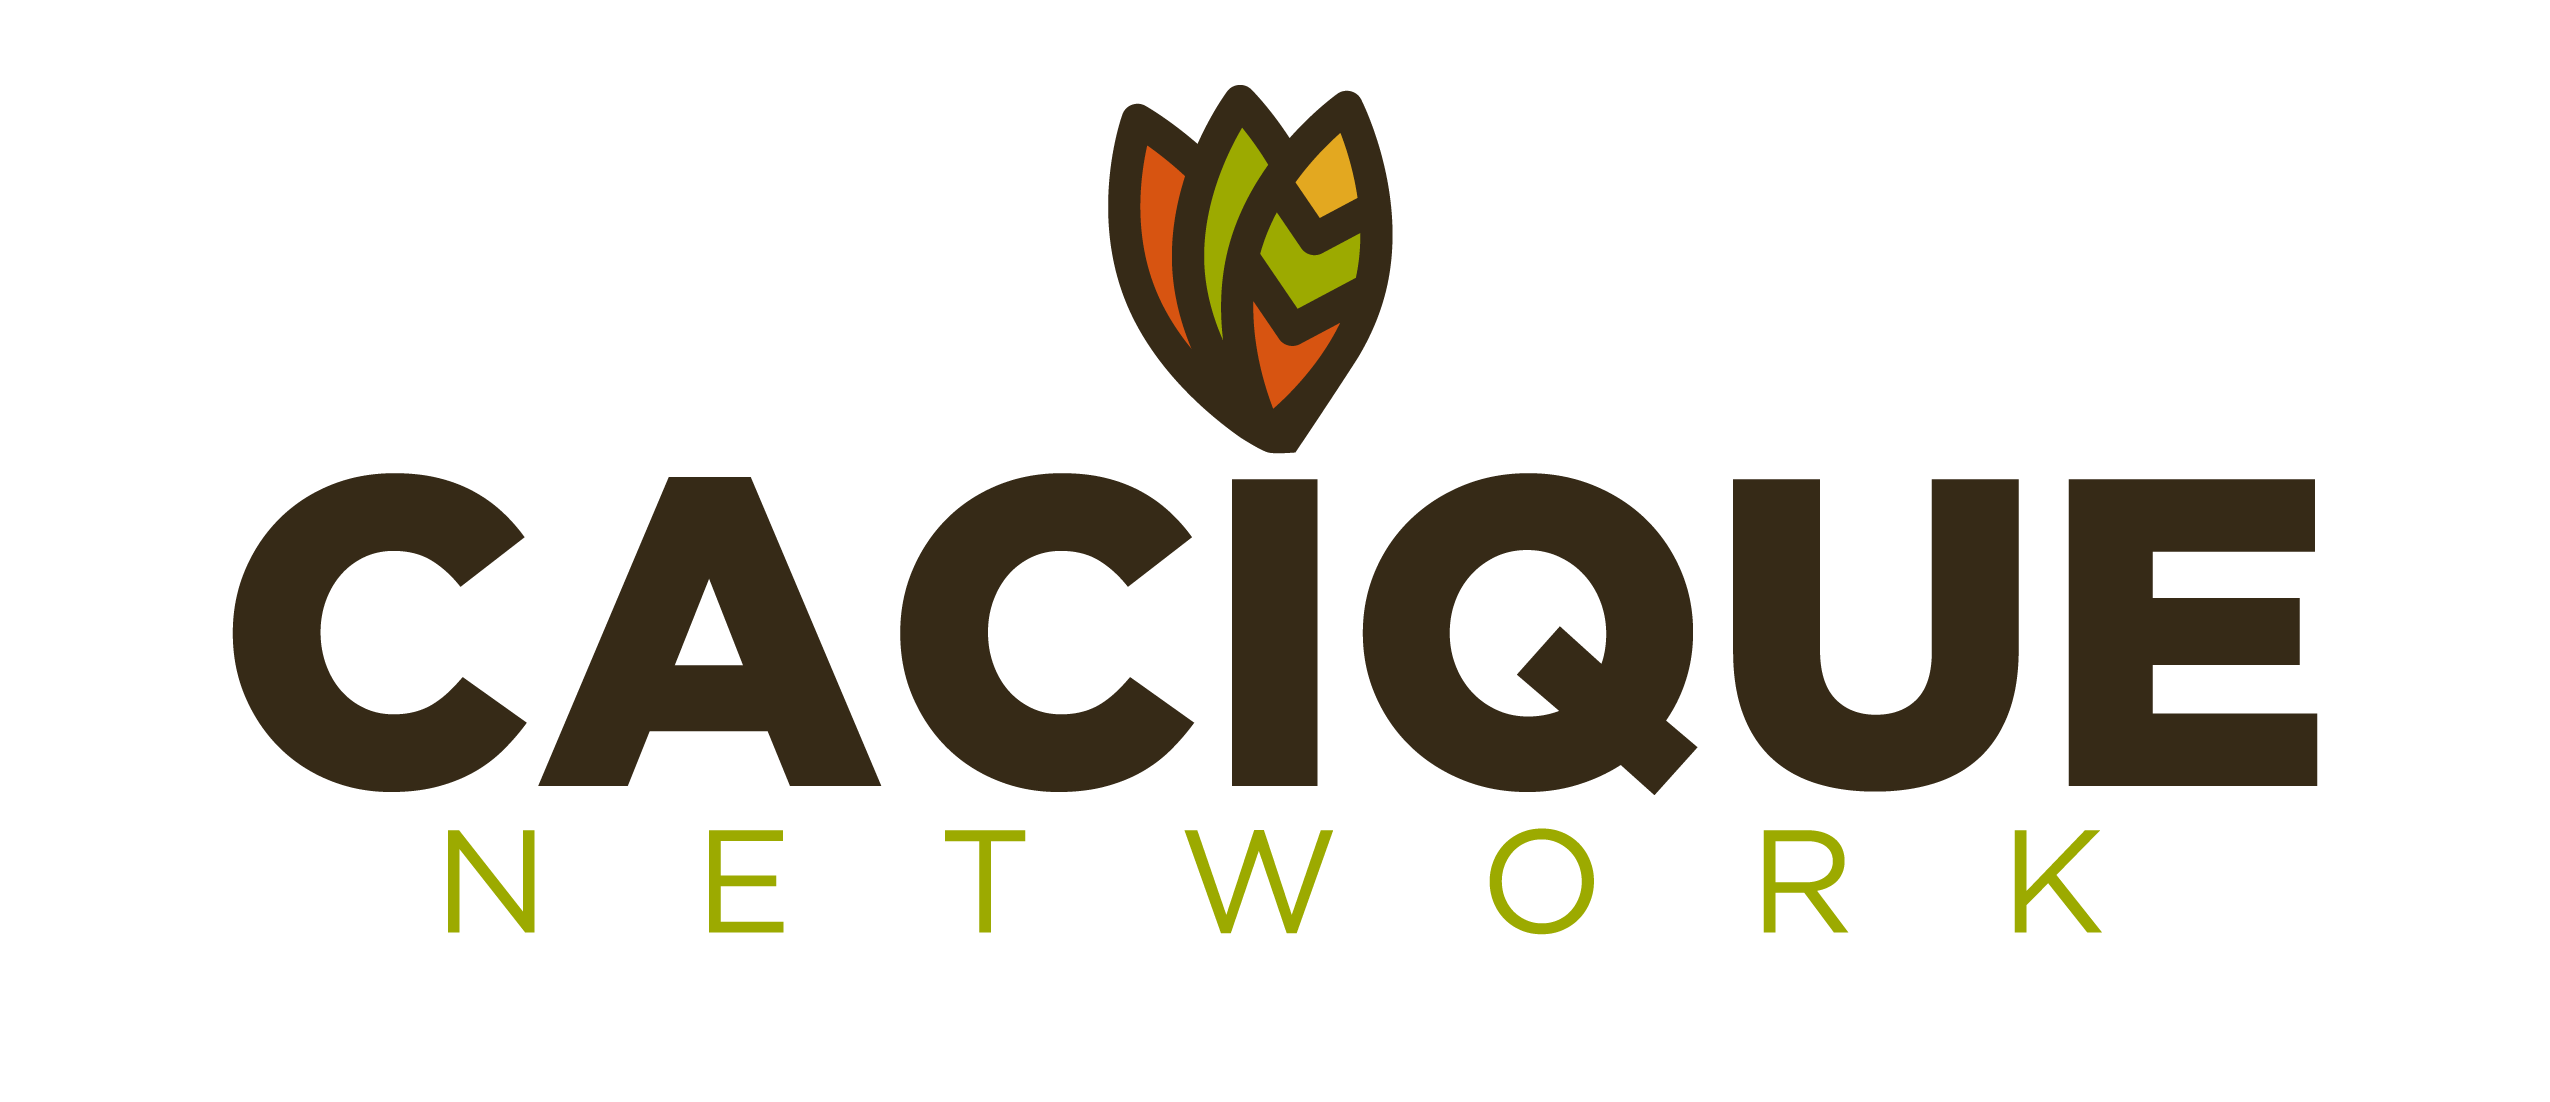 cacique-network-imagotipo-01